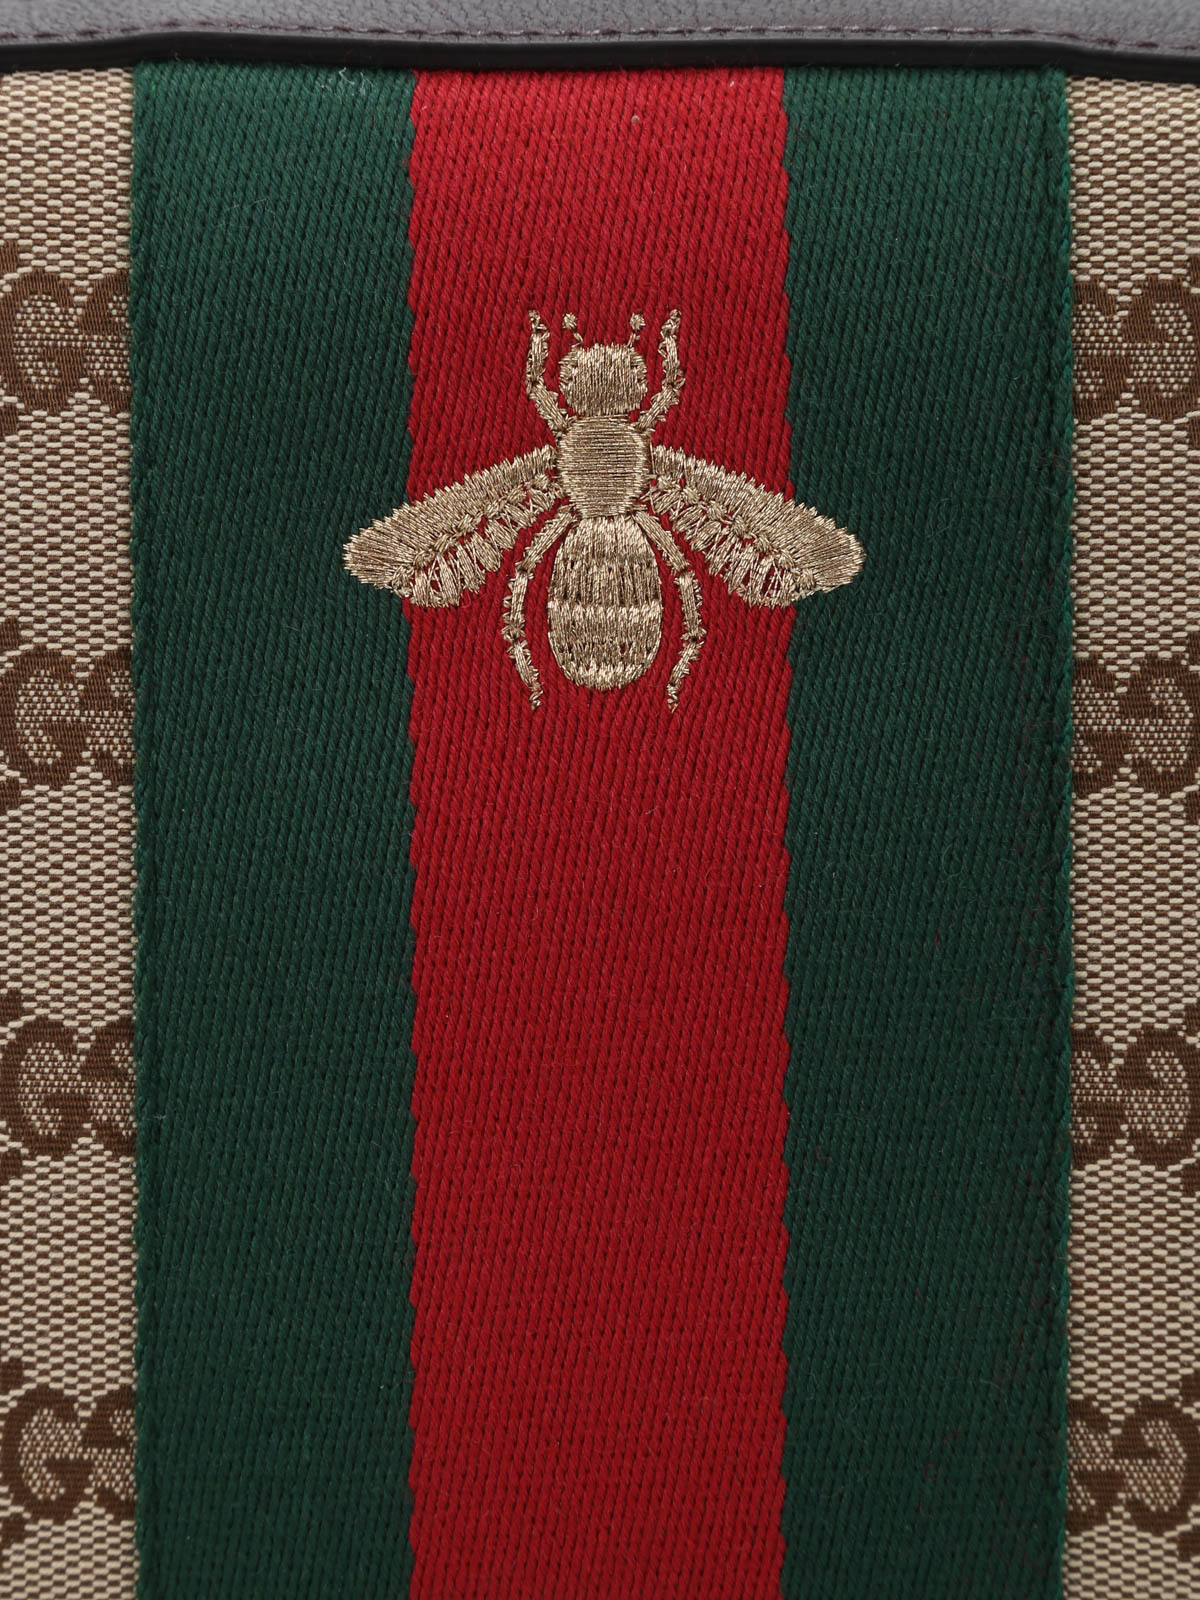 Gucci - Bee Embroidery GG Canvas Bag - Cross Body Bags - 412008 KQWYG 8869